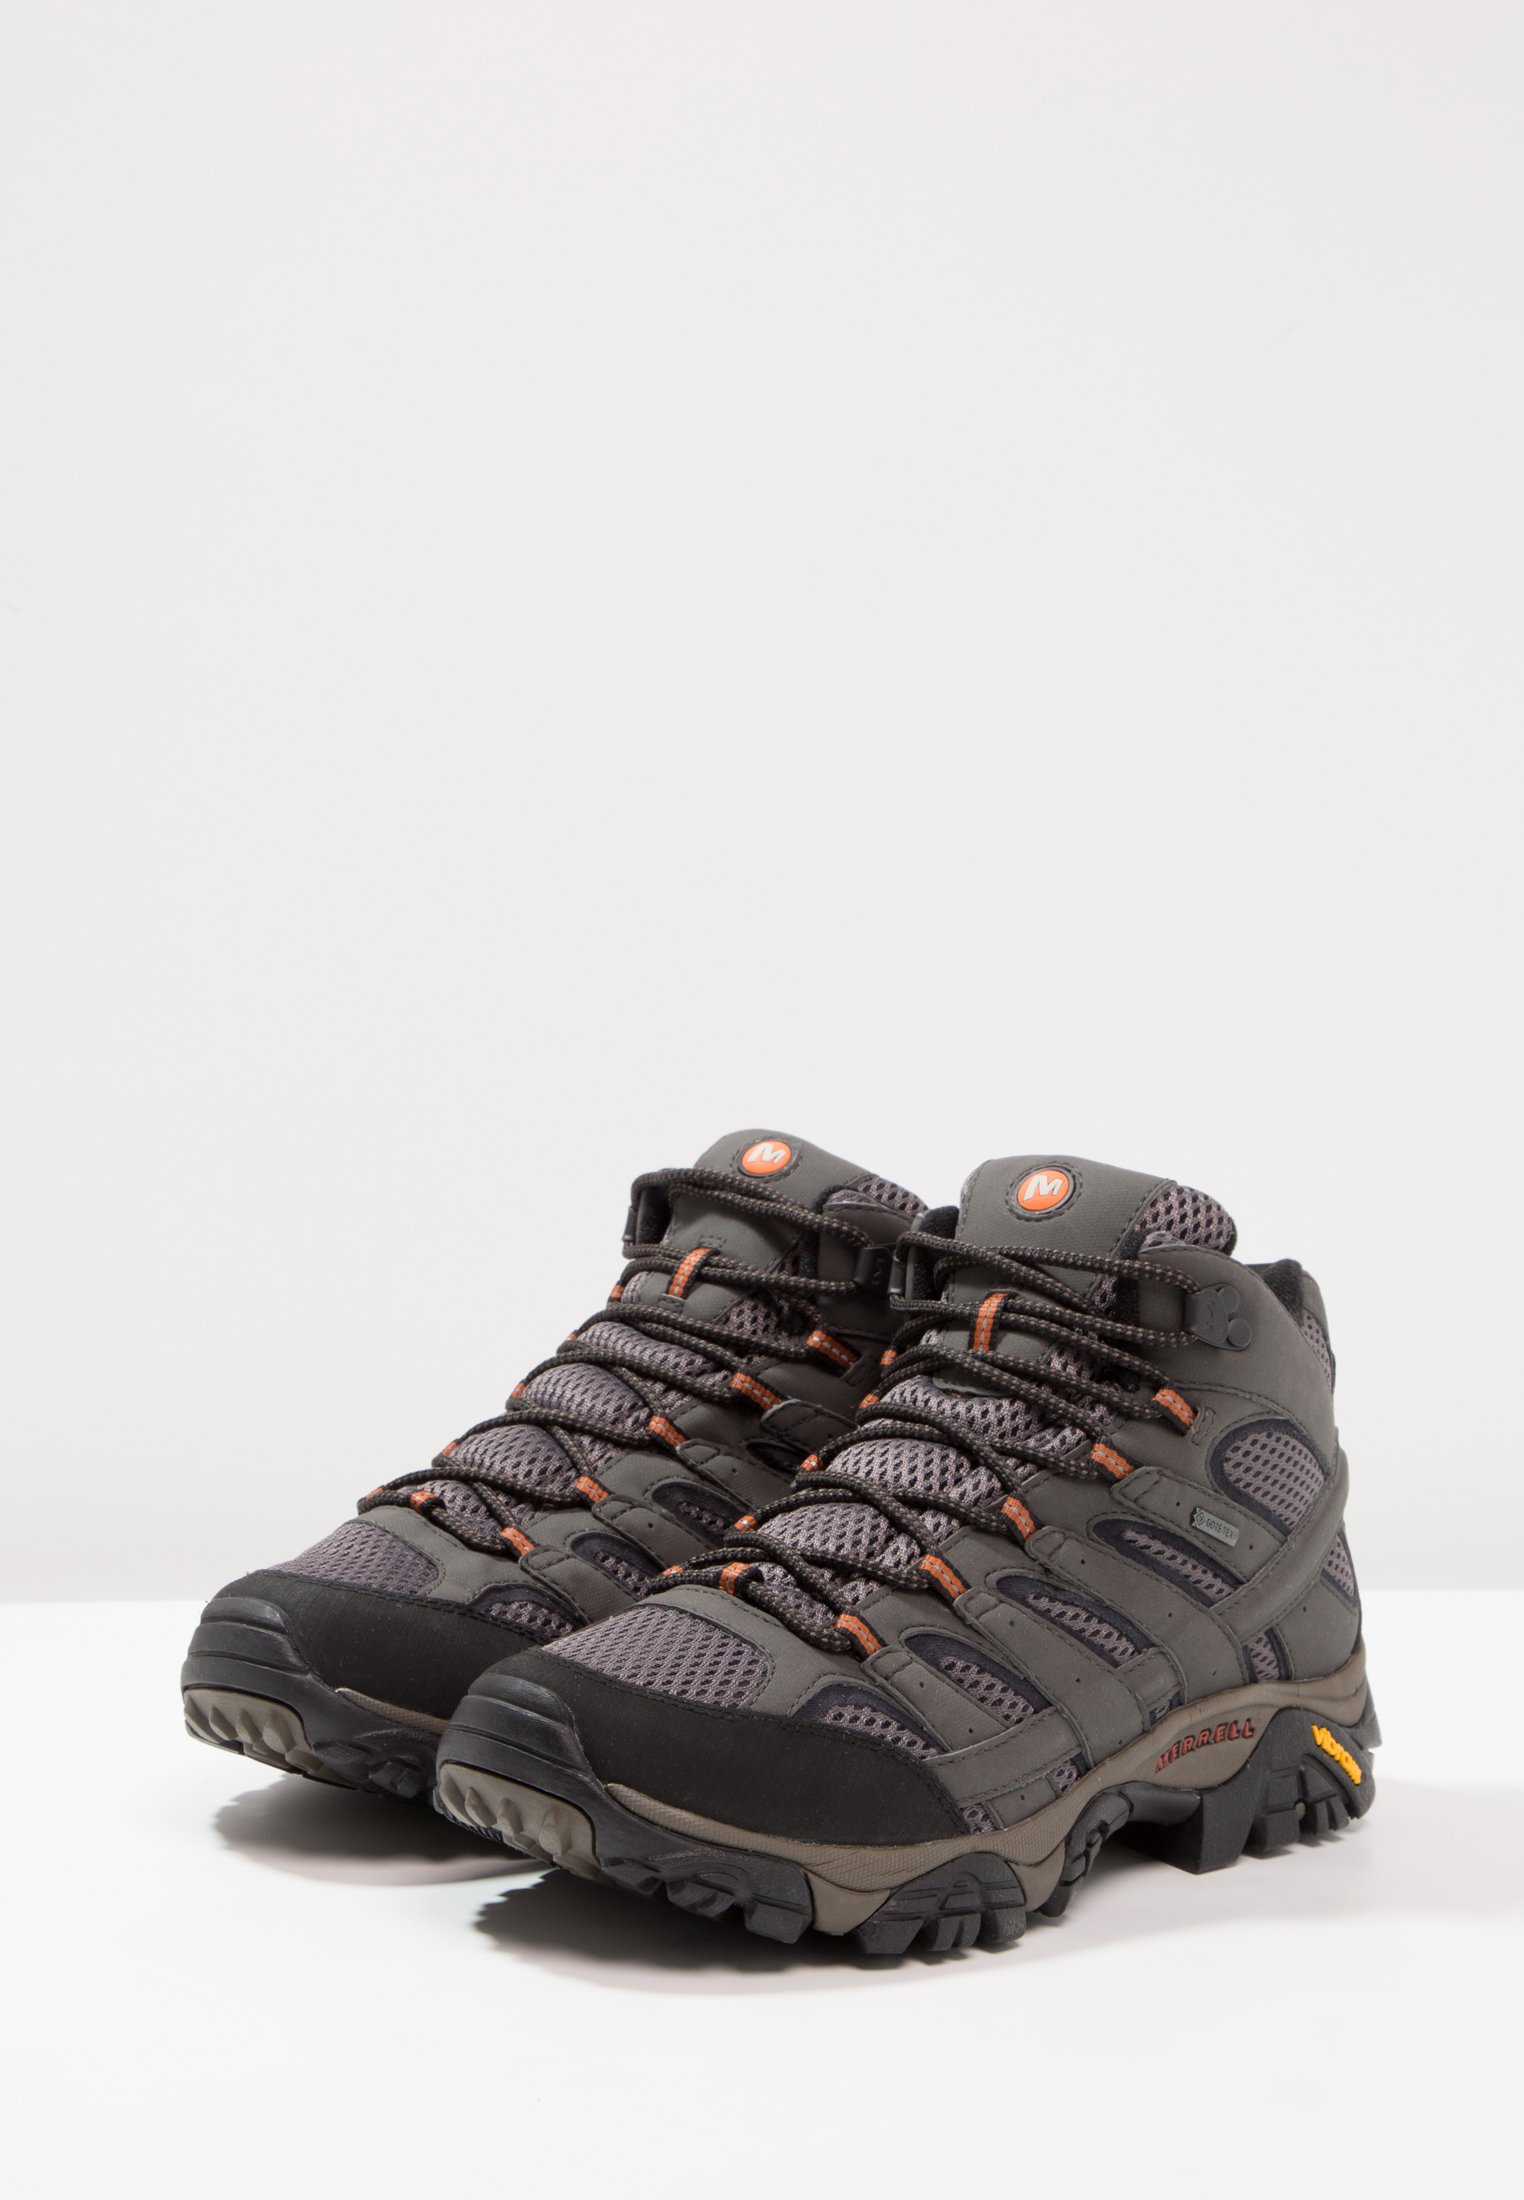 Classic Cheapest Merrell MOAB 2 MID GTX - Hiking shoes - beluga | men's shoes 2020 DqrzN